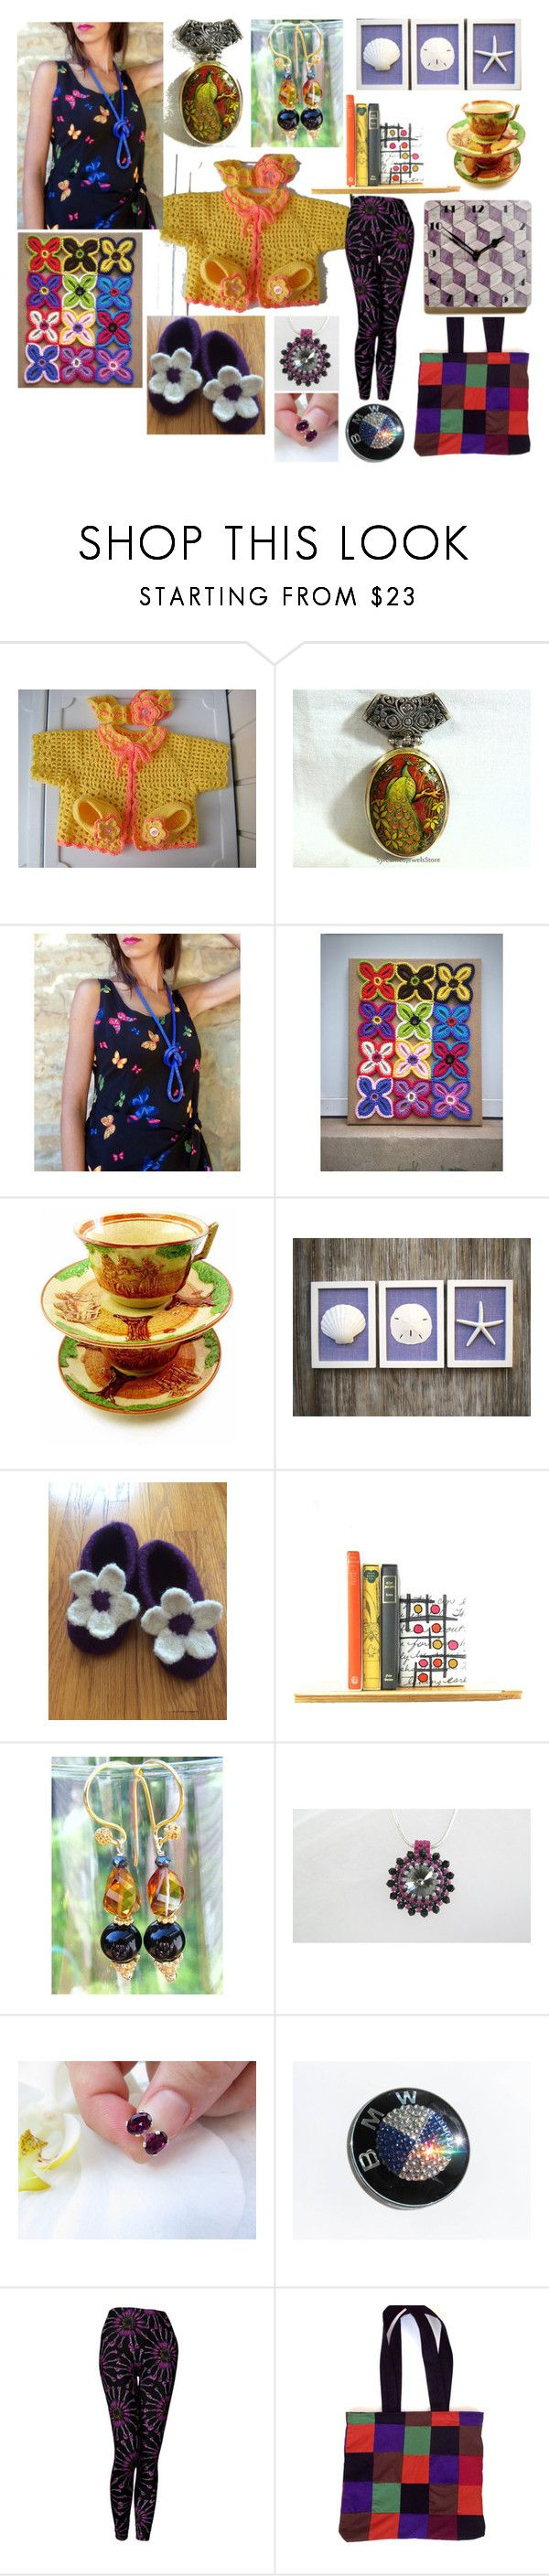 """Handmade Gifts Are Always in Style: ETSY"" by belladonnasjoy ❤ liked on Polyvore featuring Artista, BMW, Cadeau, modern, rustic and vintage"